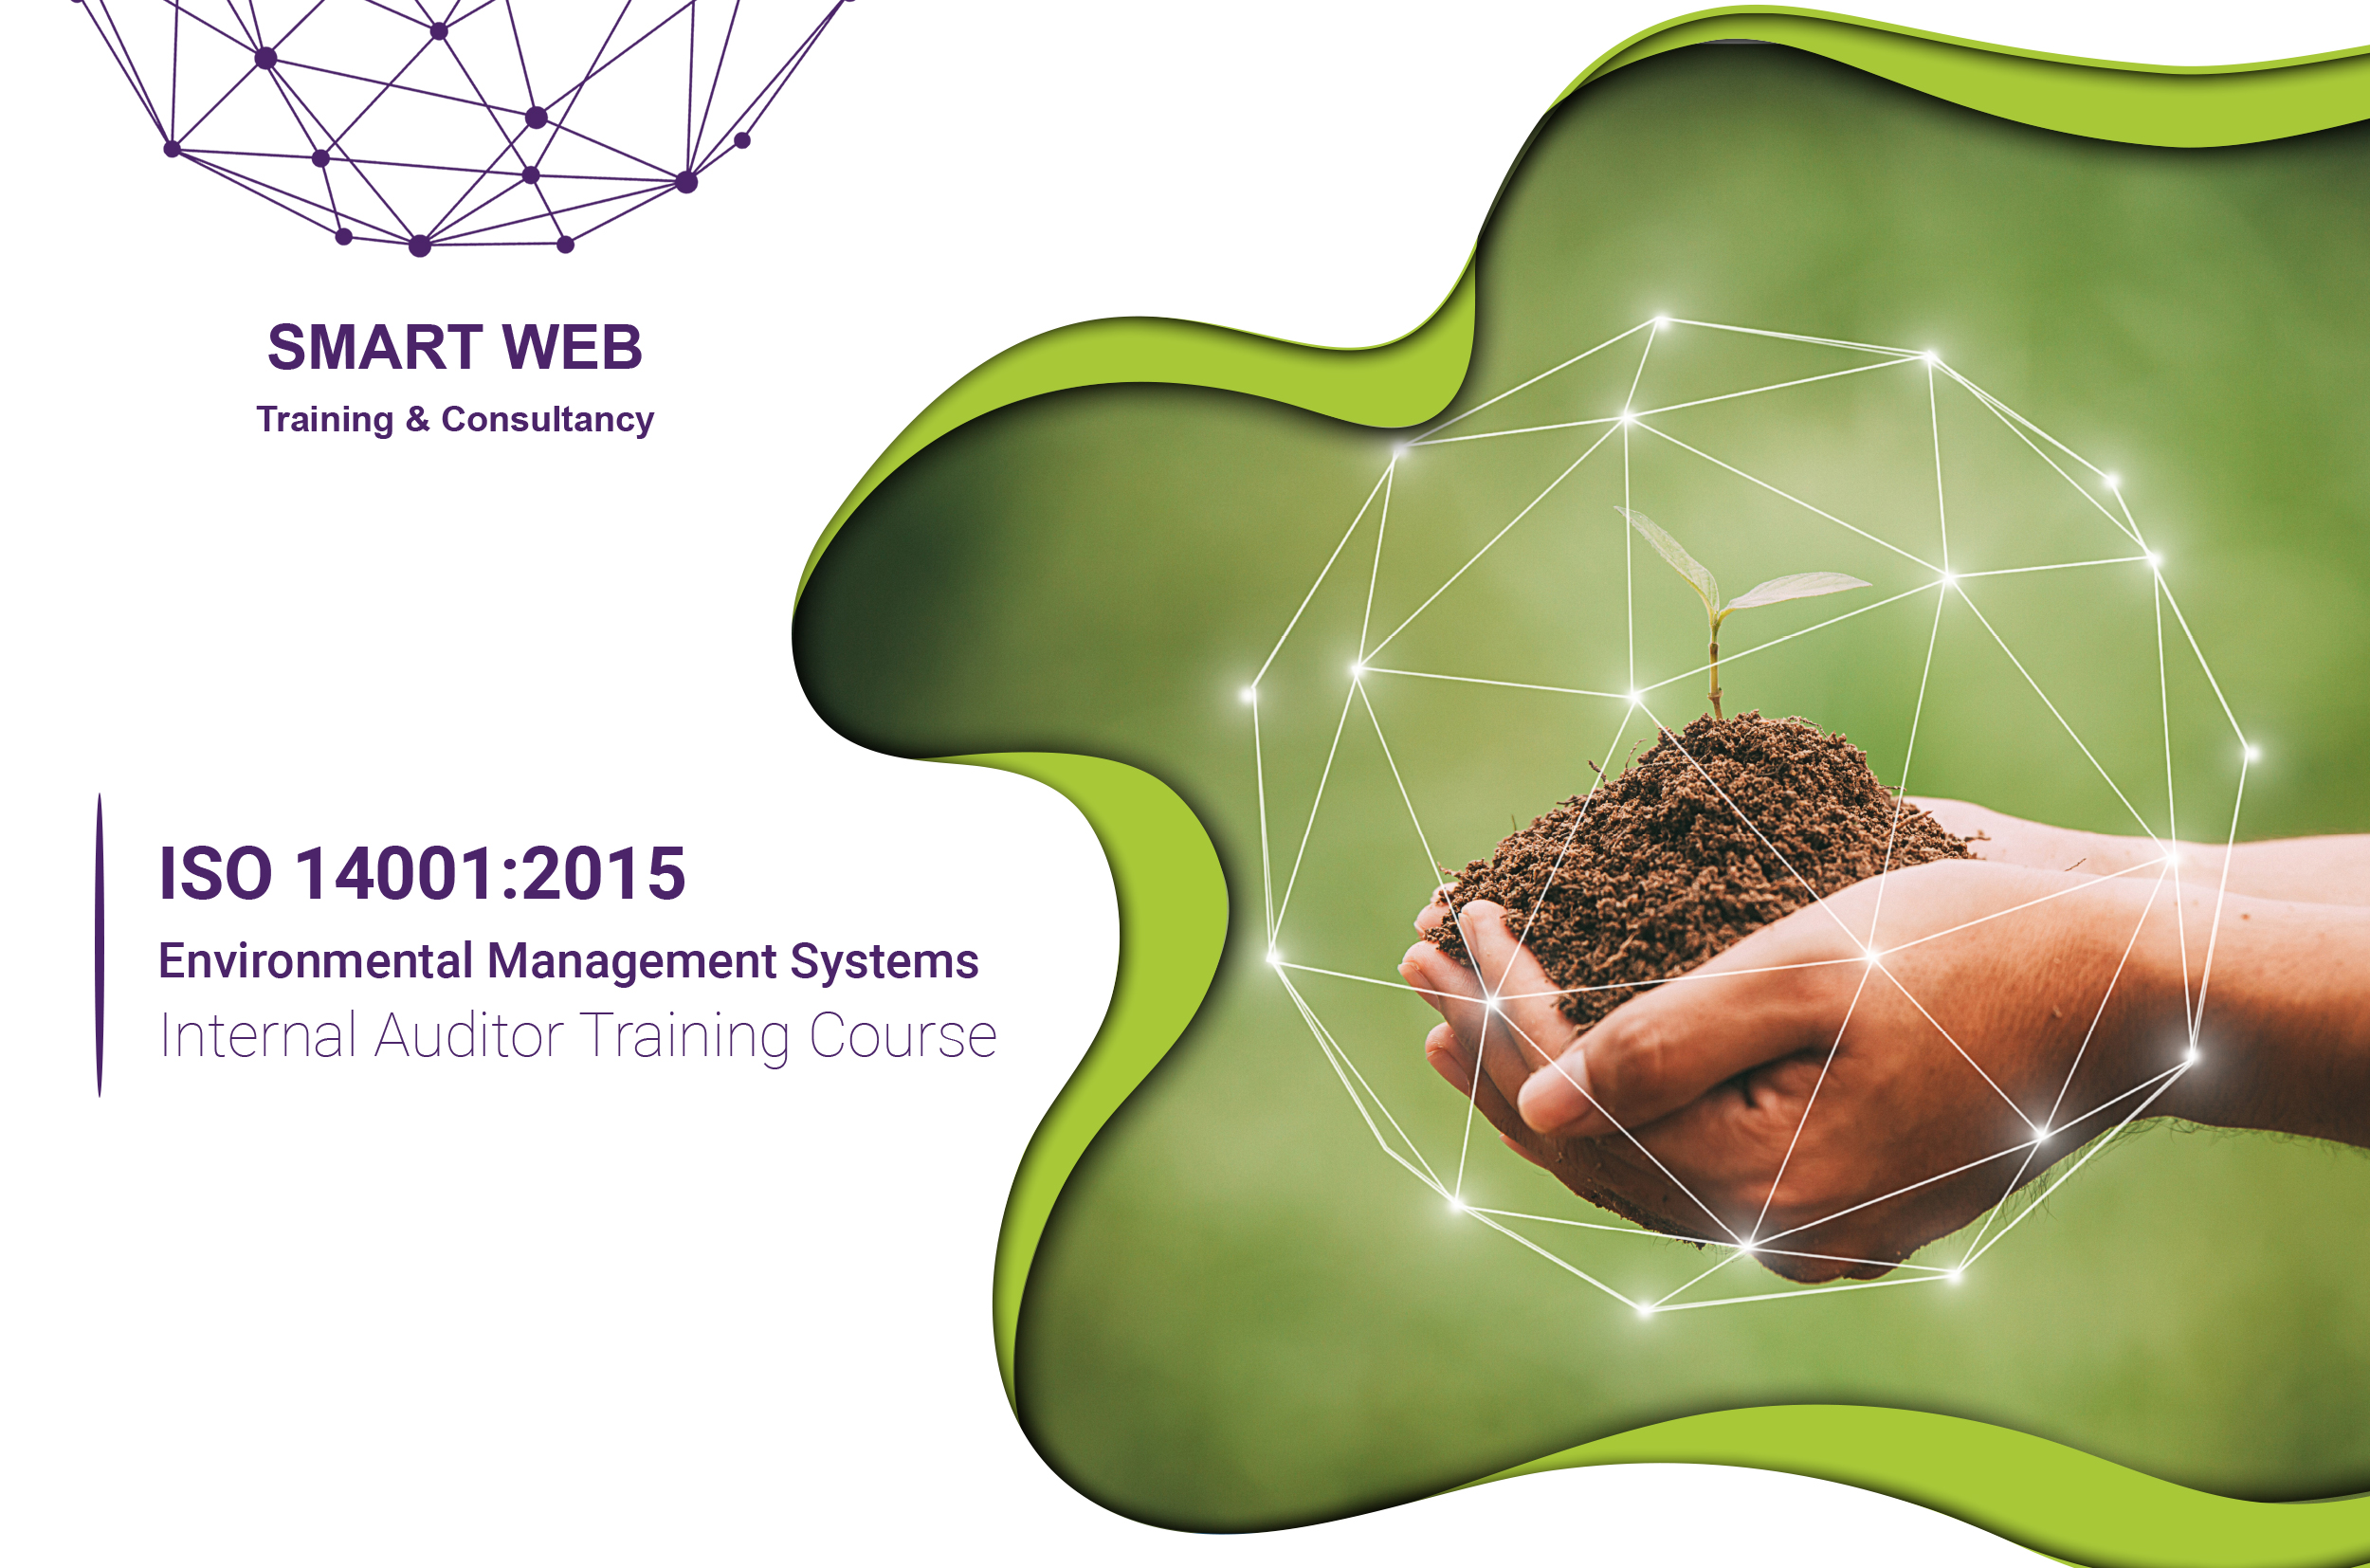 ISO 14001:2015 - Environmental Management Systems - Internal Auditor Training Course